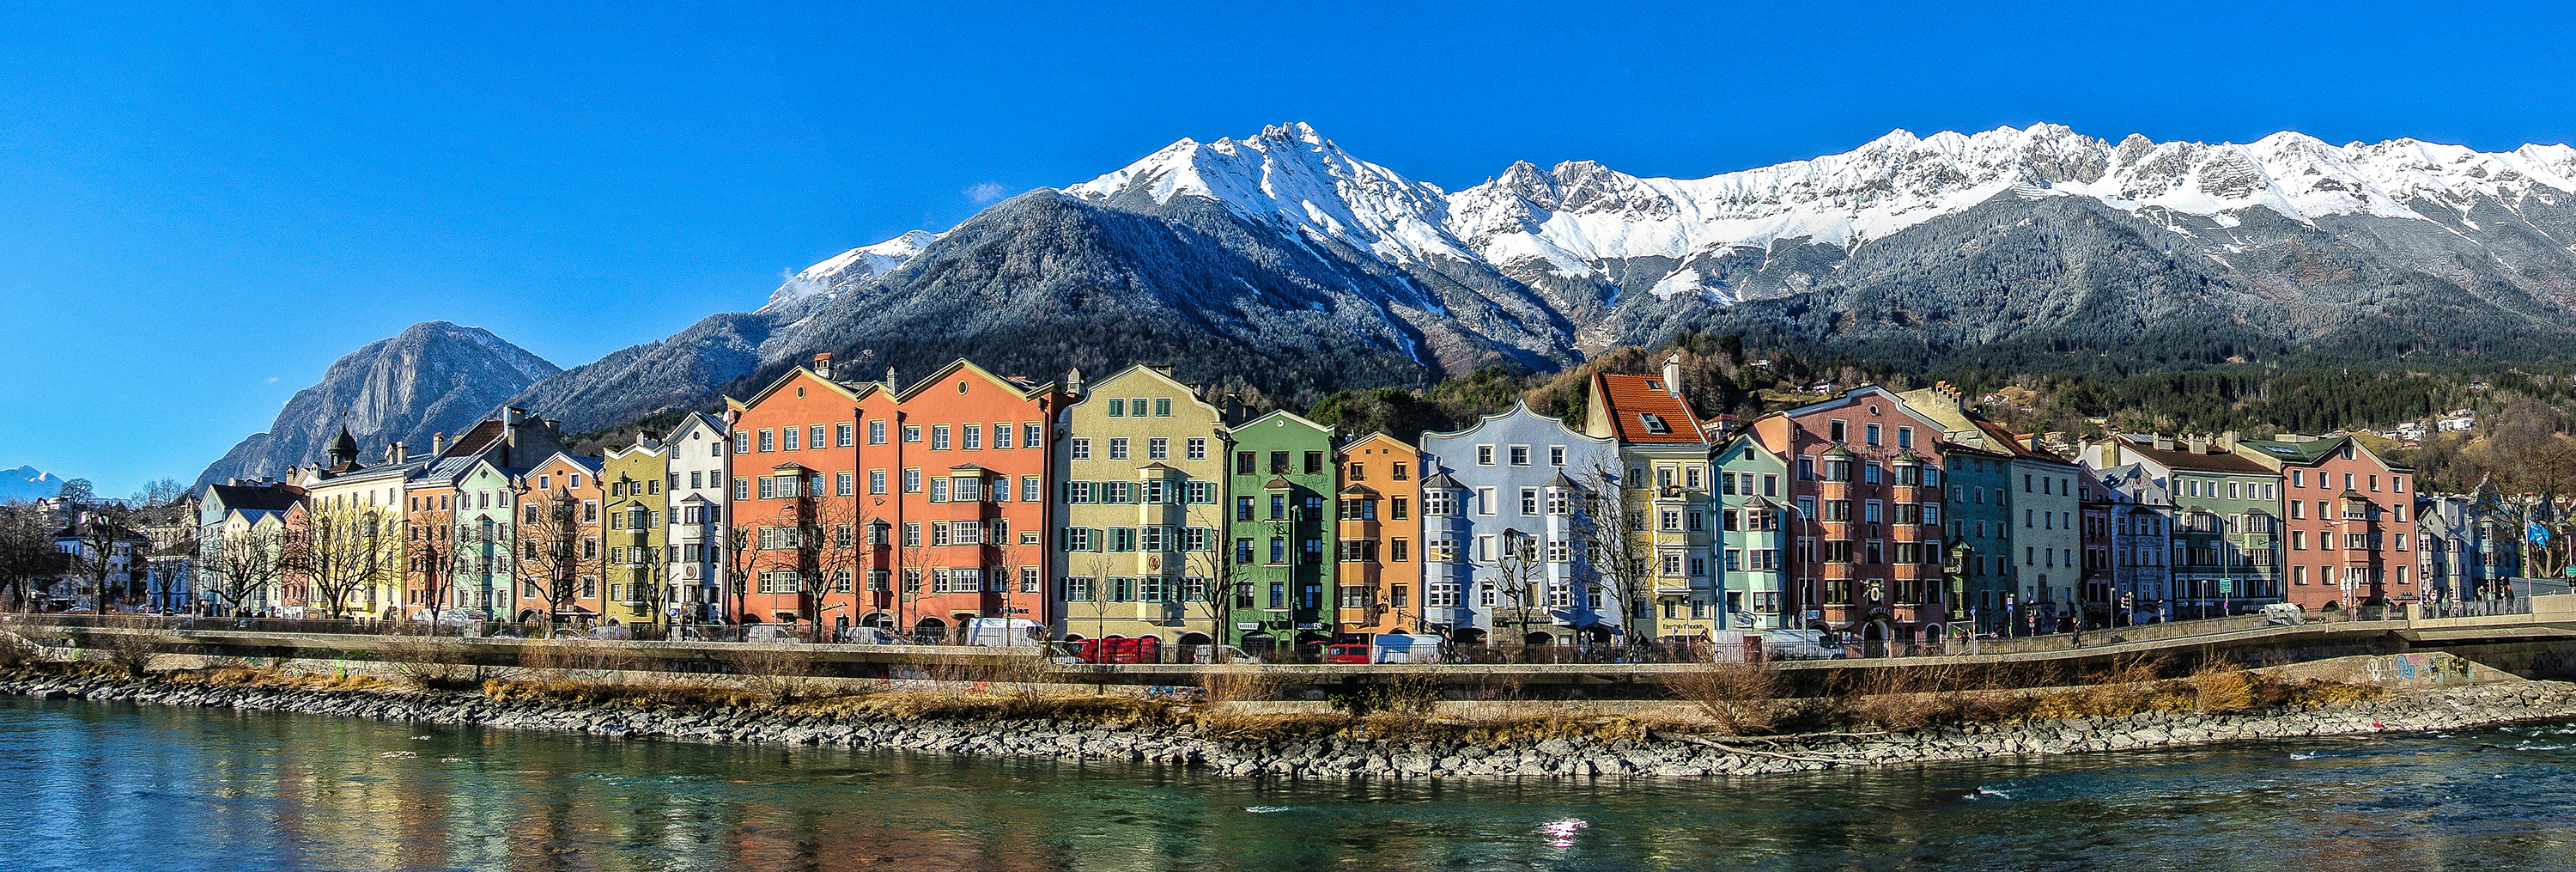 Innsbruck City I headed to Innsbruck for